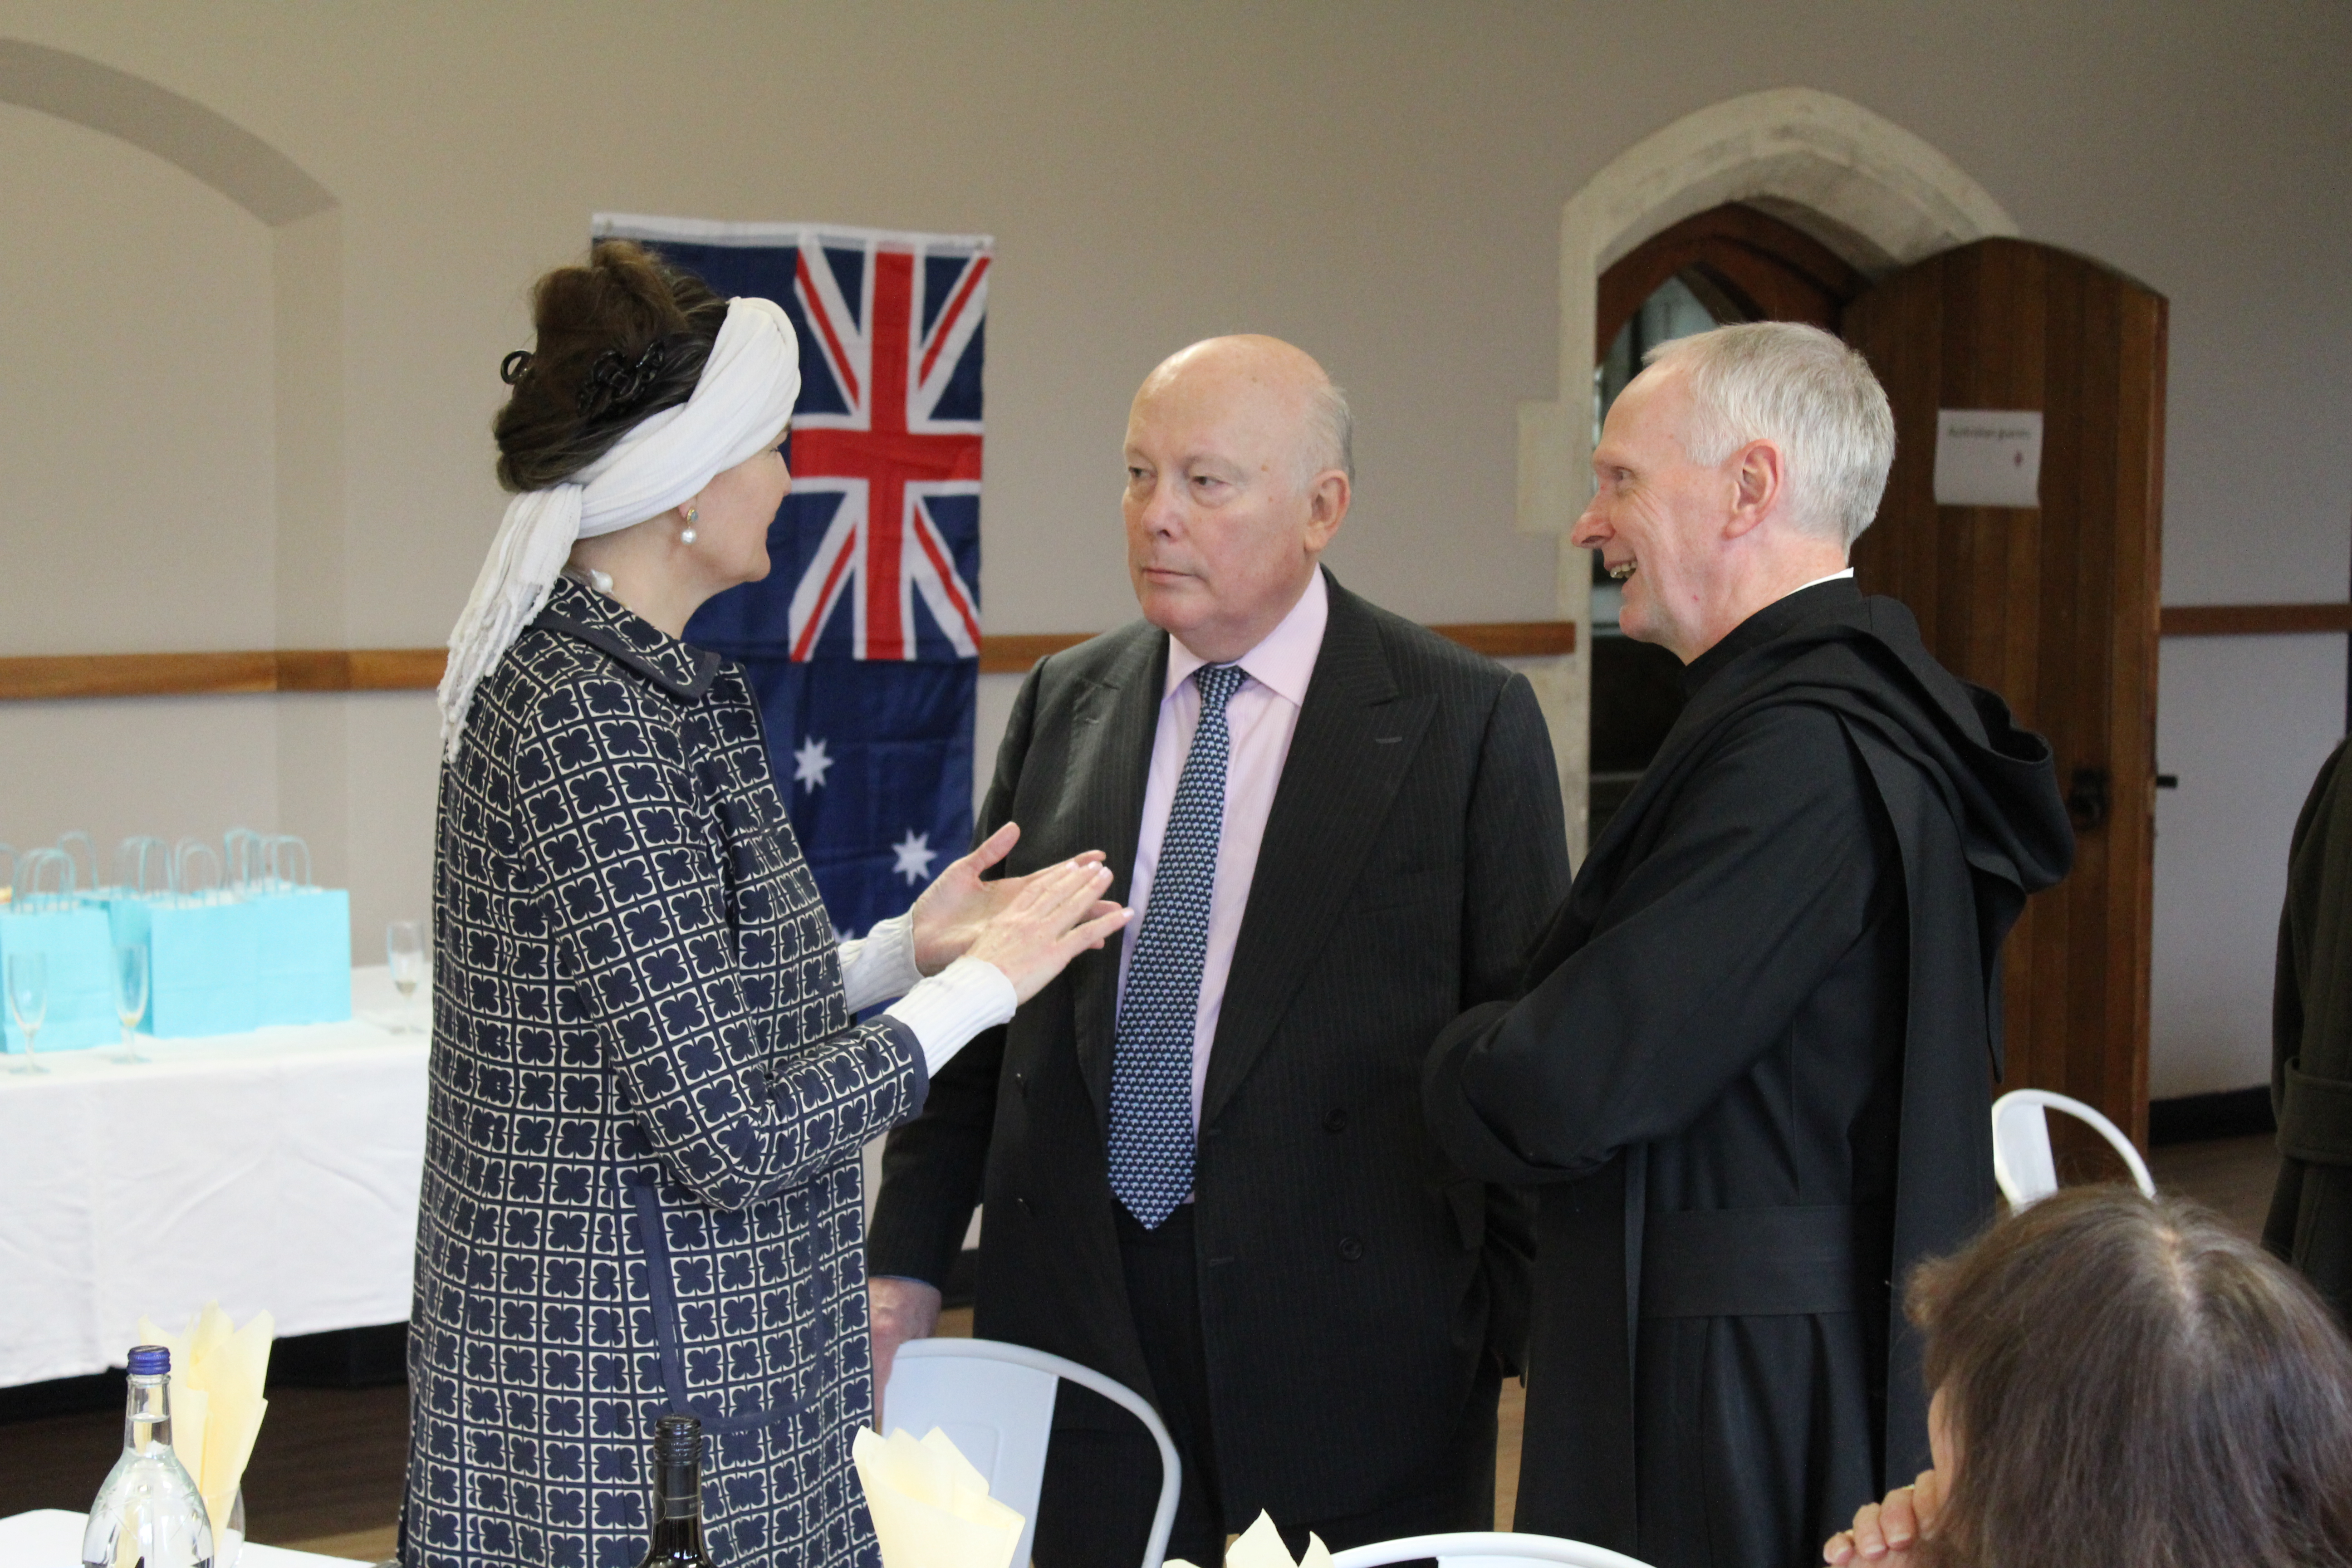 Downside British Australian Visit